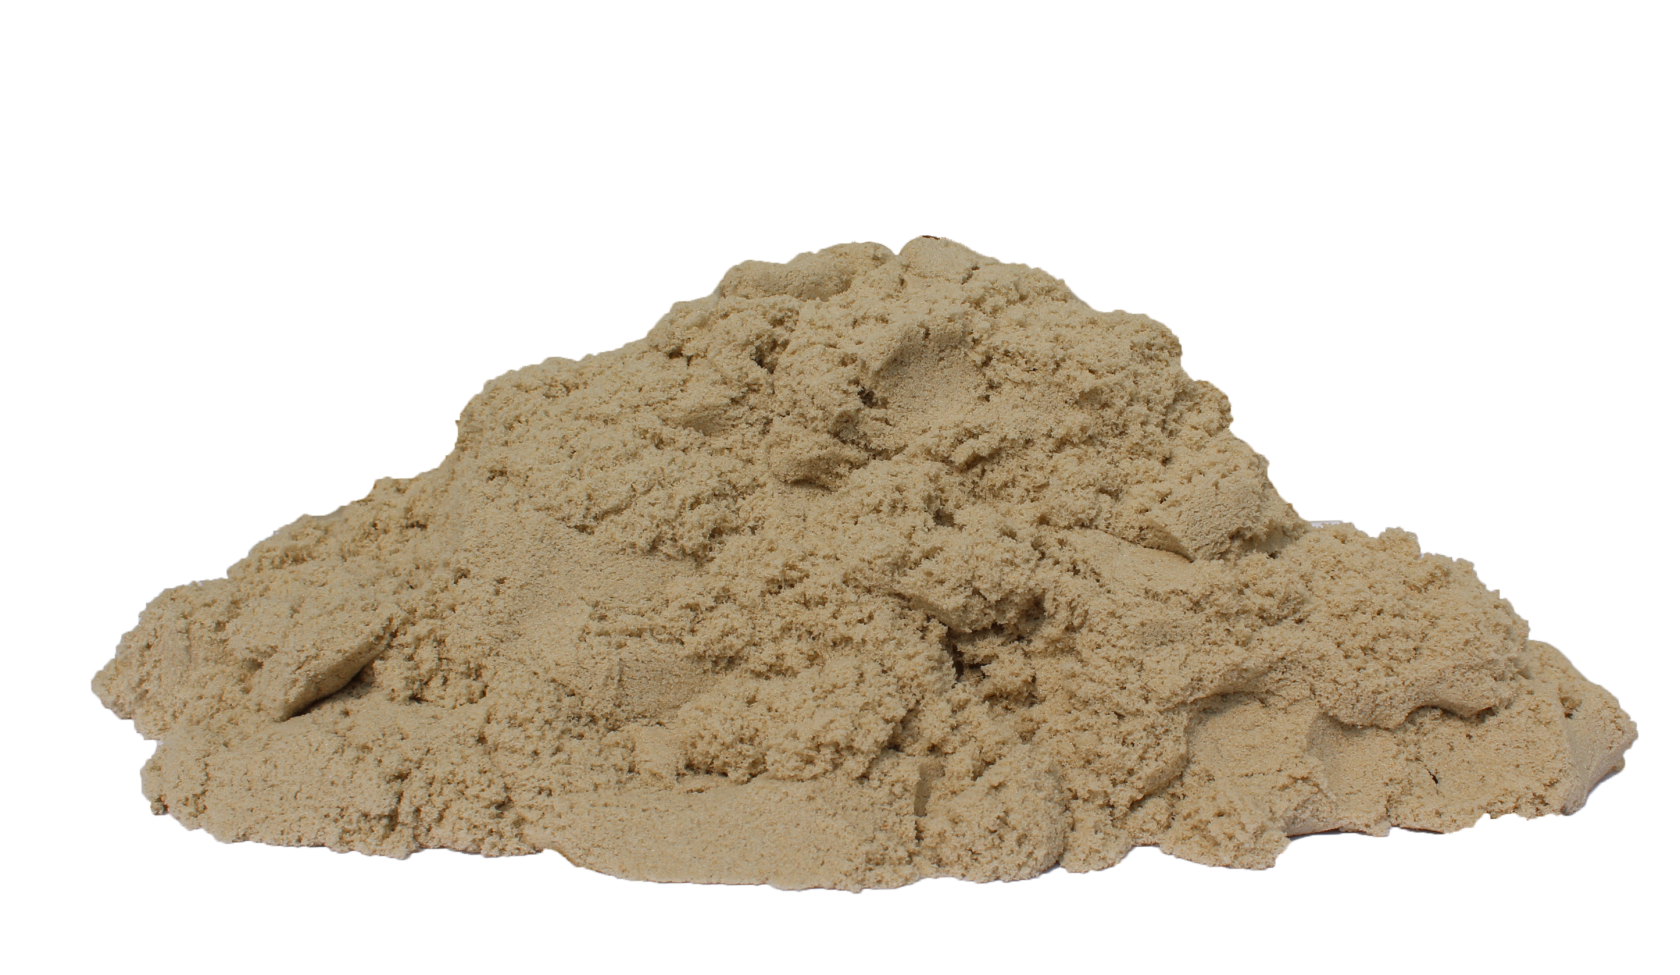 Sand png images free. Dirt clipart brown rock